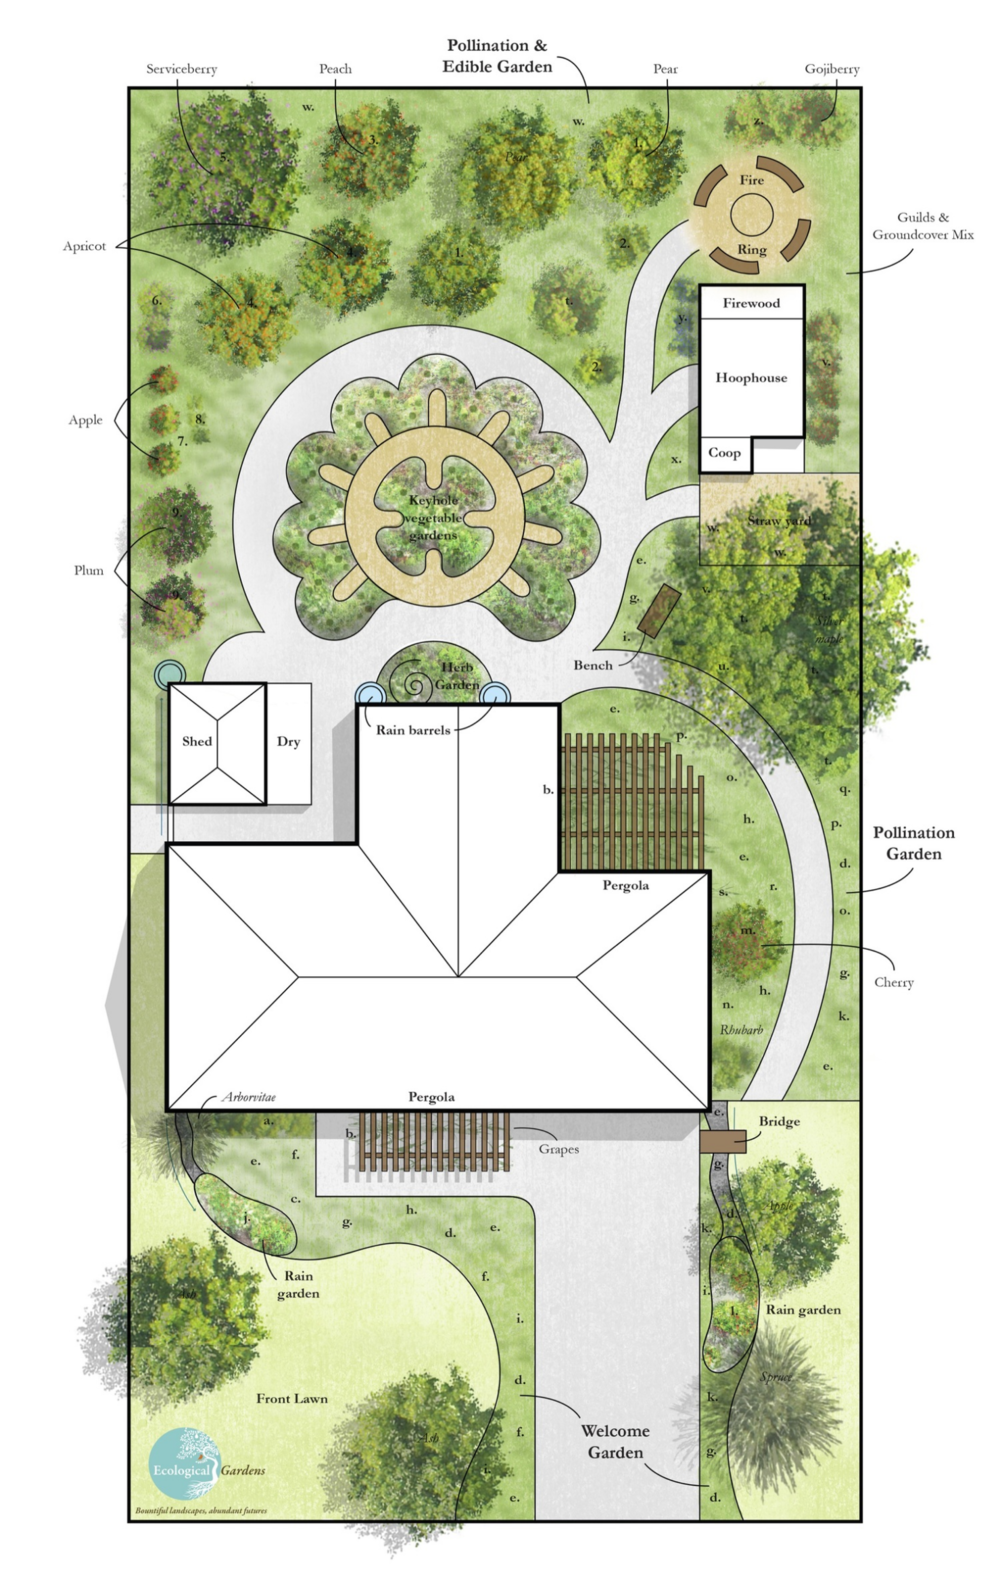 Example of an Ecological Gardens' landscape design for an urban homestead with areas for edible gardens, fruit trees, rain gardens and pollinator gardens.    Image courtesy of Ecological Gardens